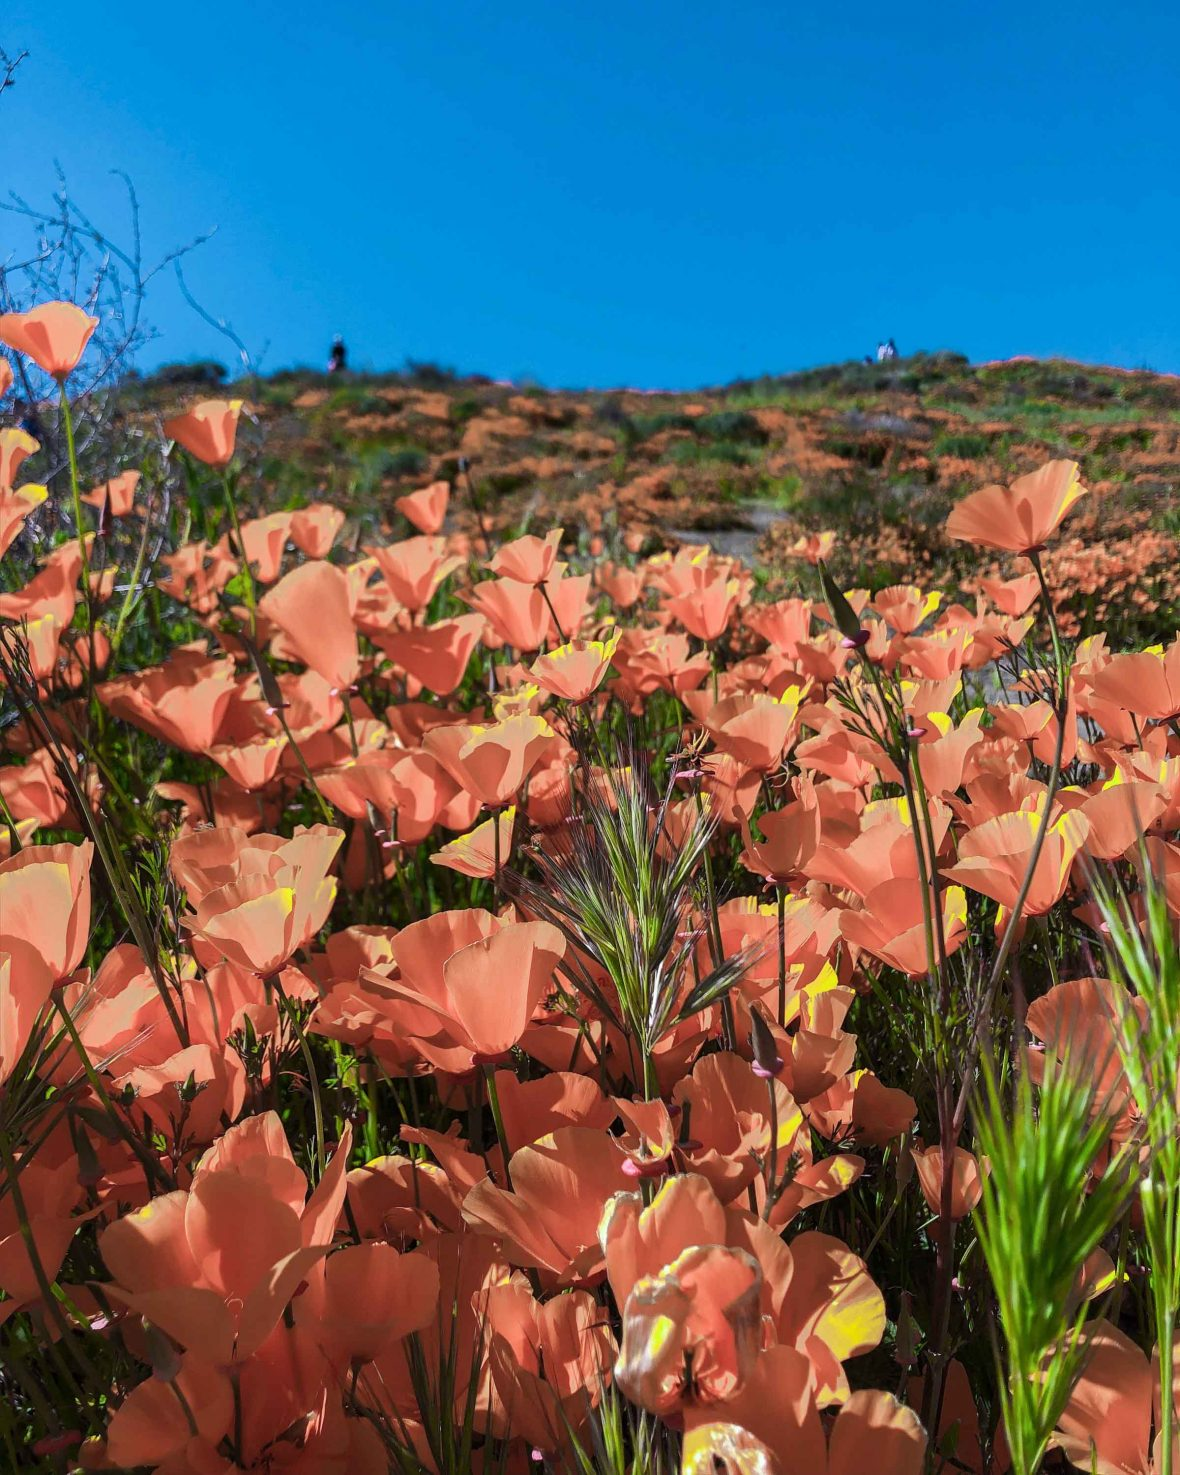 The poppy super bloom in Lake Elsinore, California, caused 66,000 smartphone-wielding visitors to the town.